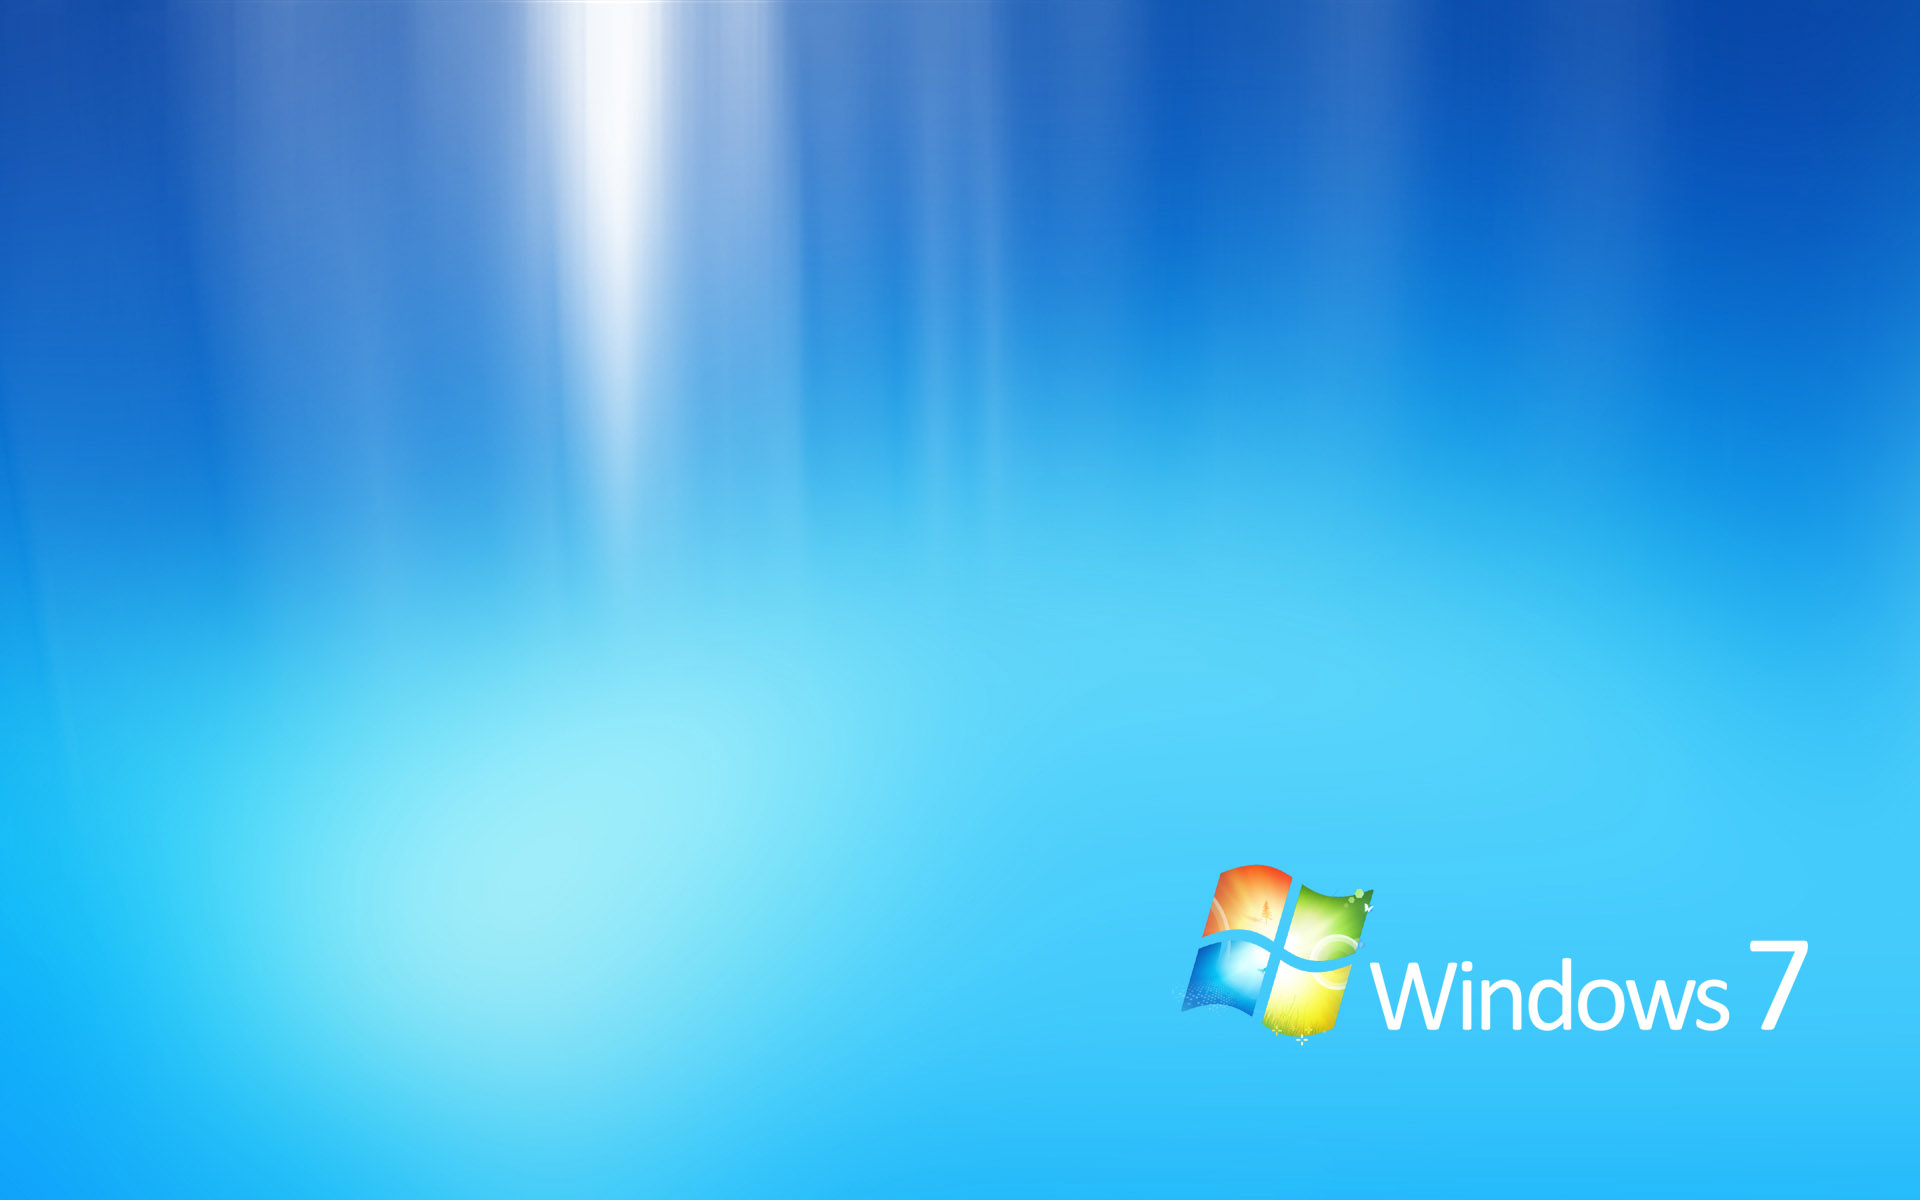 More windows 7 basic themes other than the standard light blue.